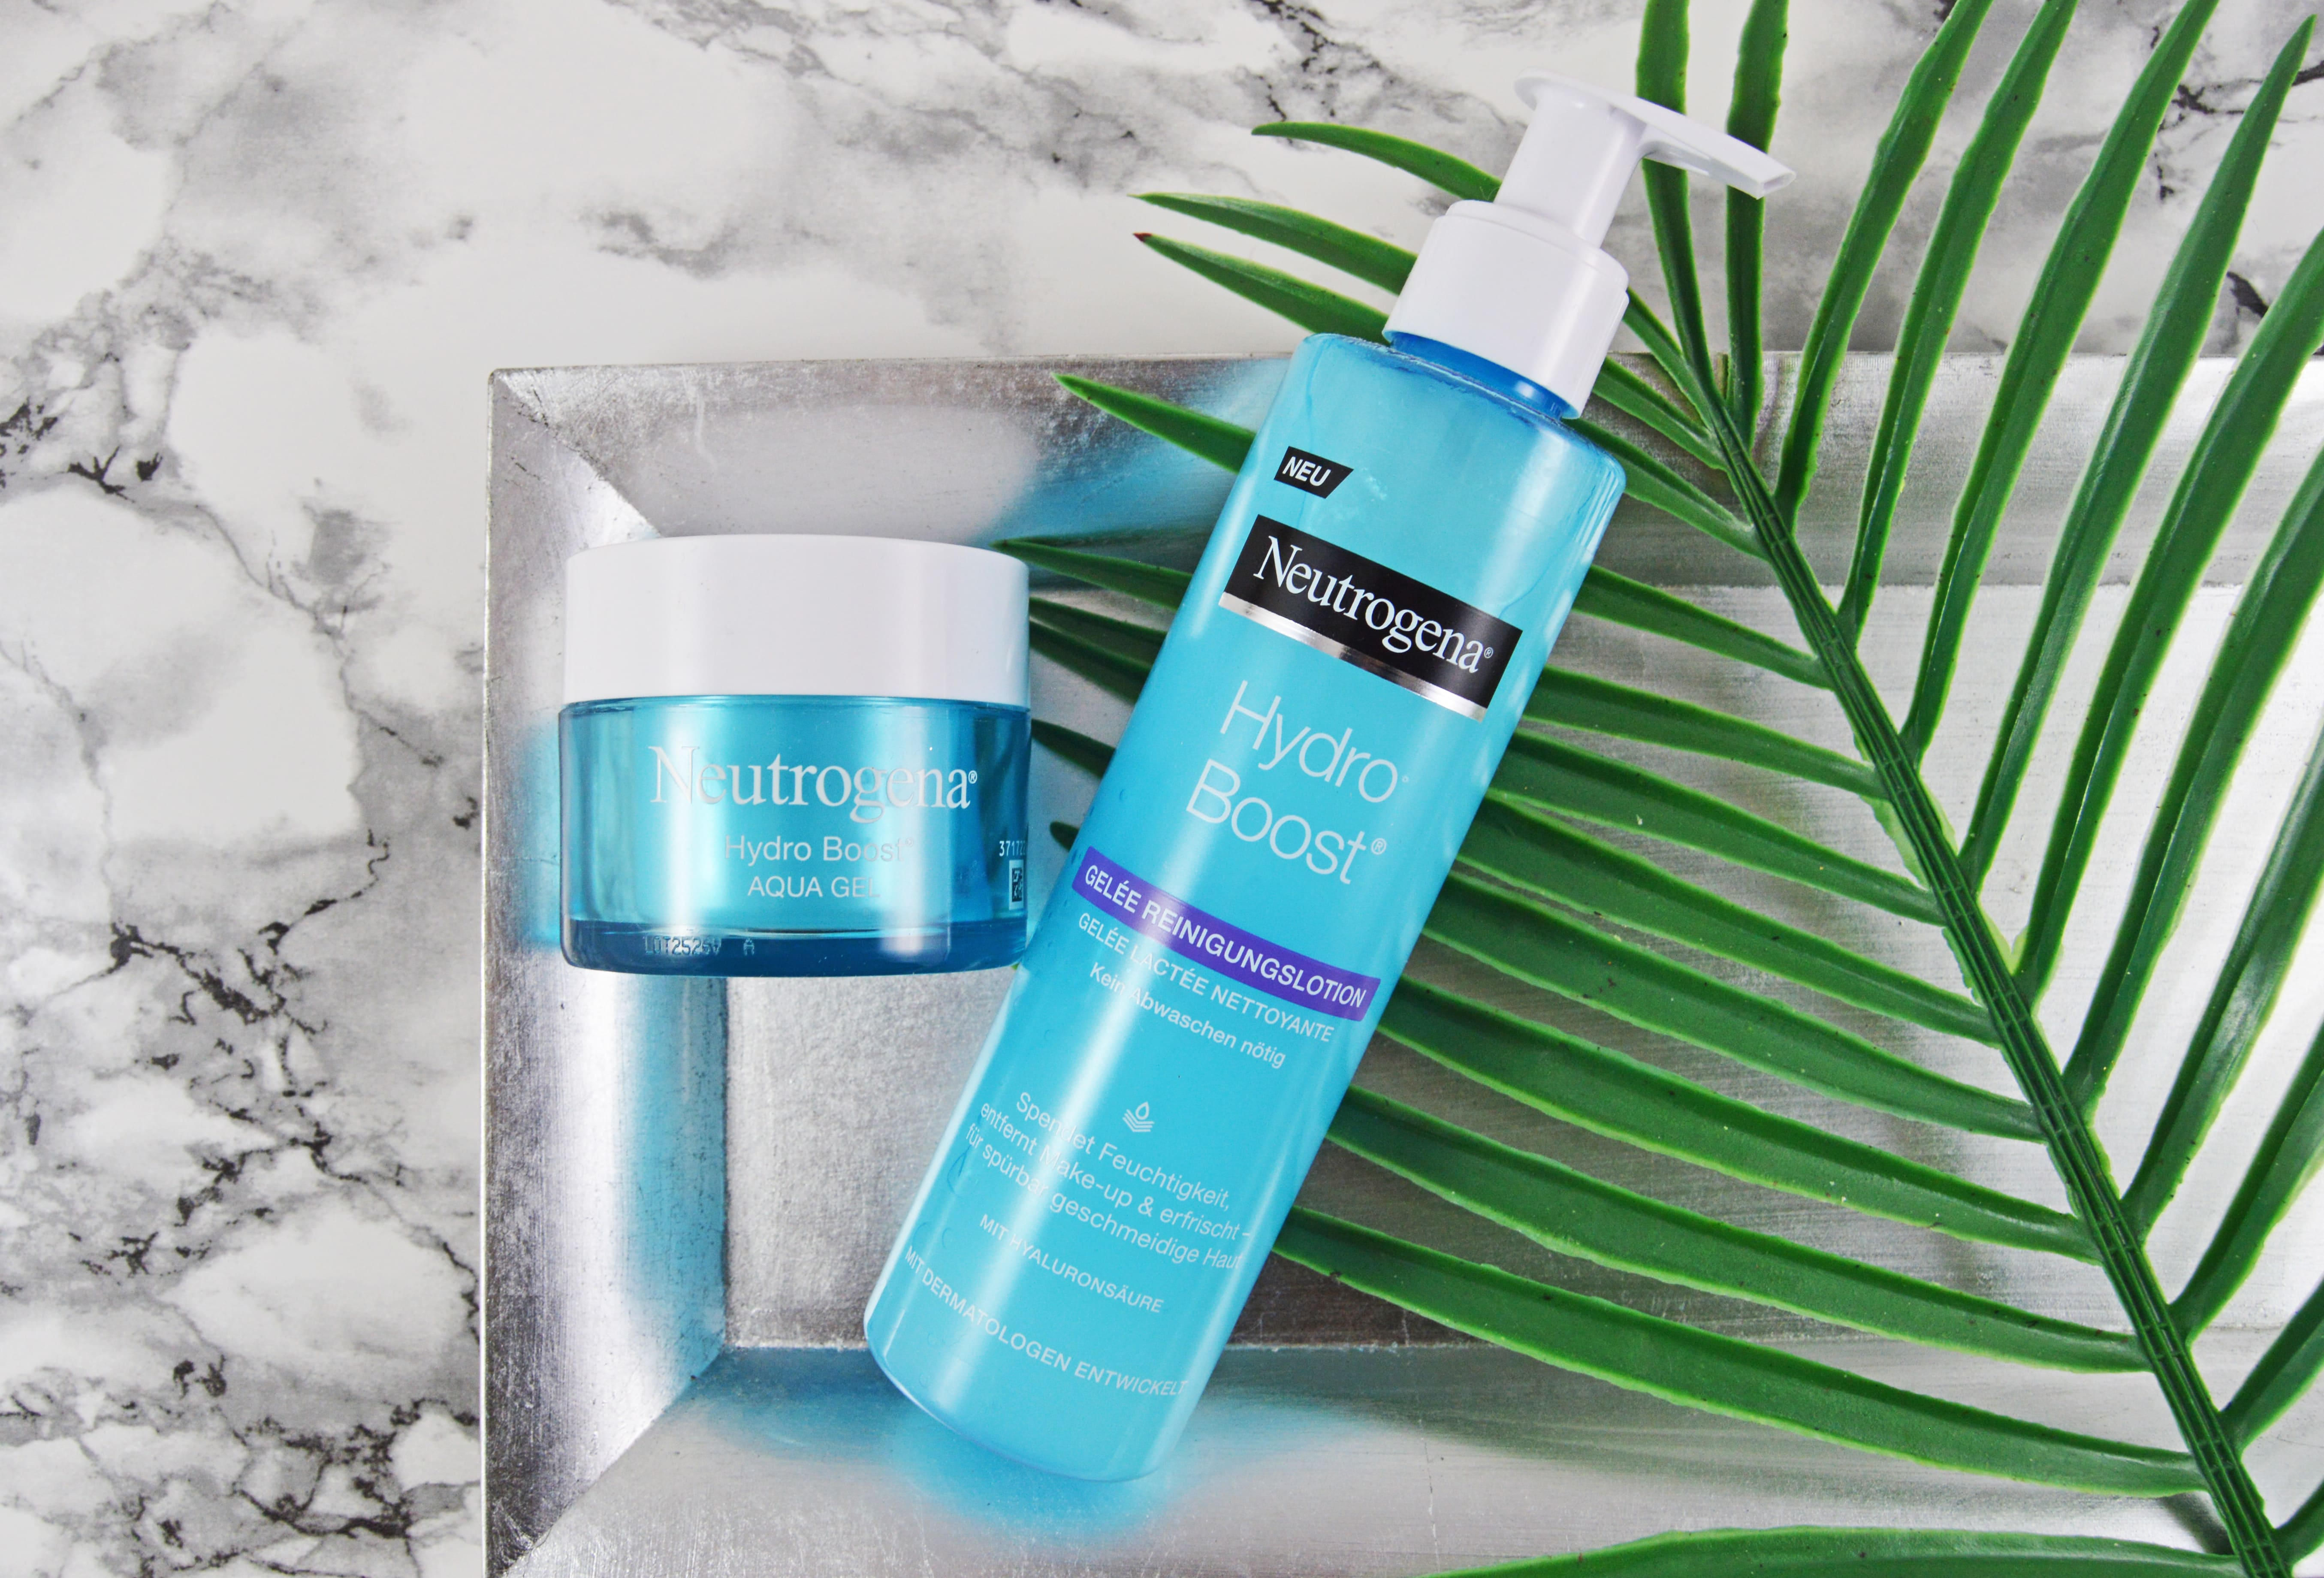 Neutrogena Hydro Boost.